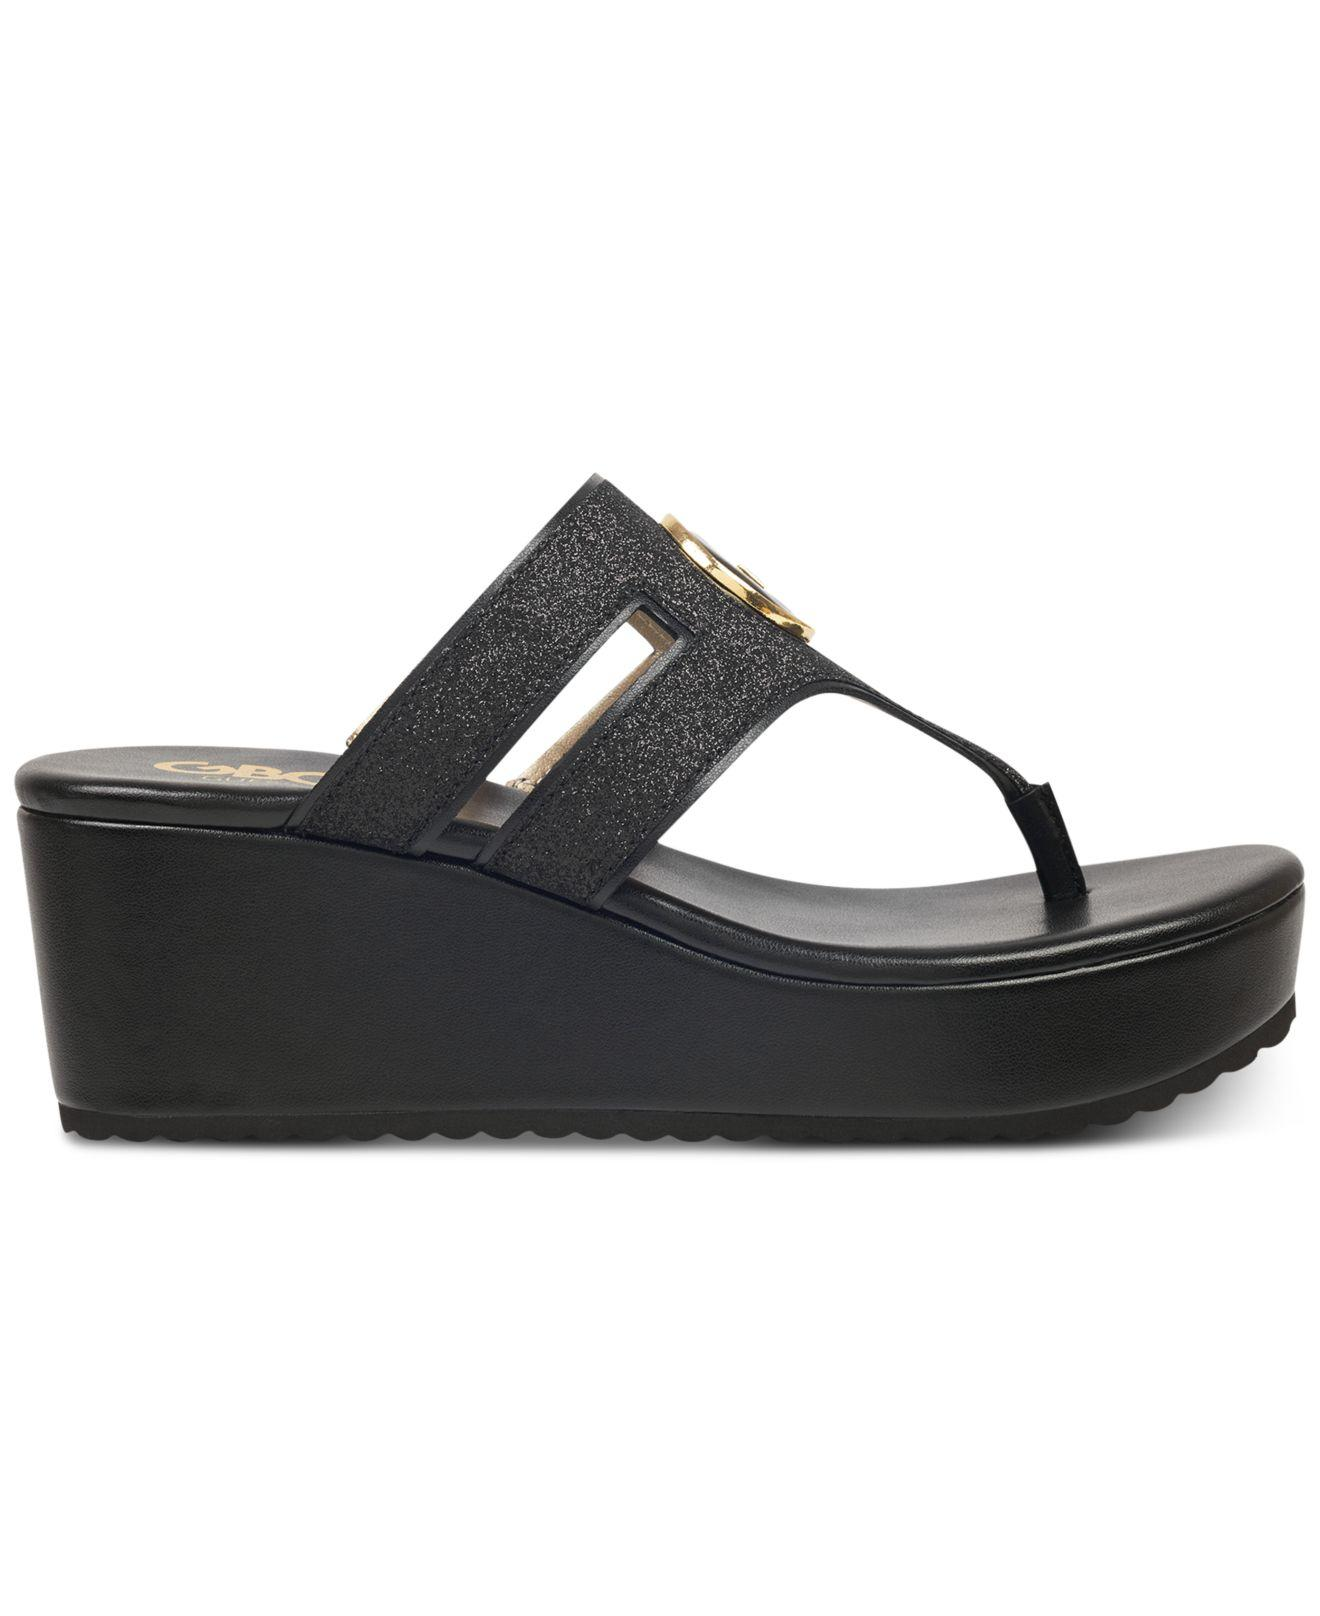 016ae8fcd Lyst - G by Guess Gandy Wedge Sandals in Black